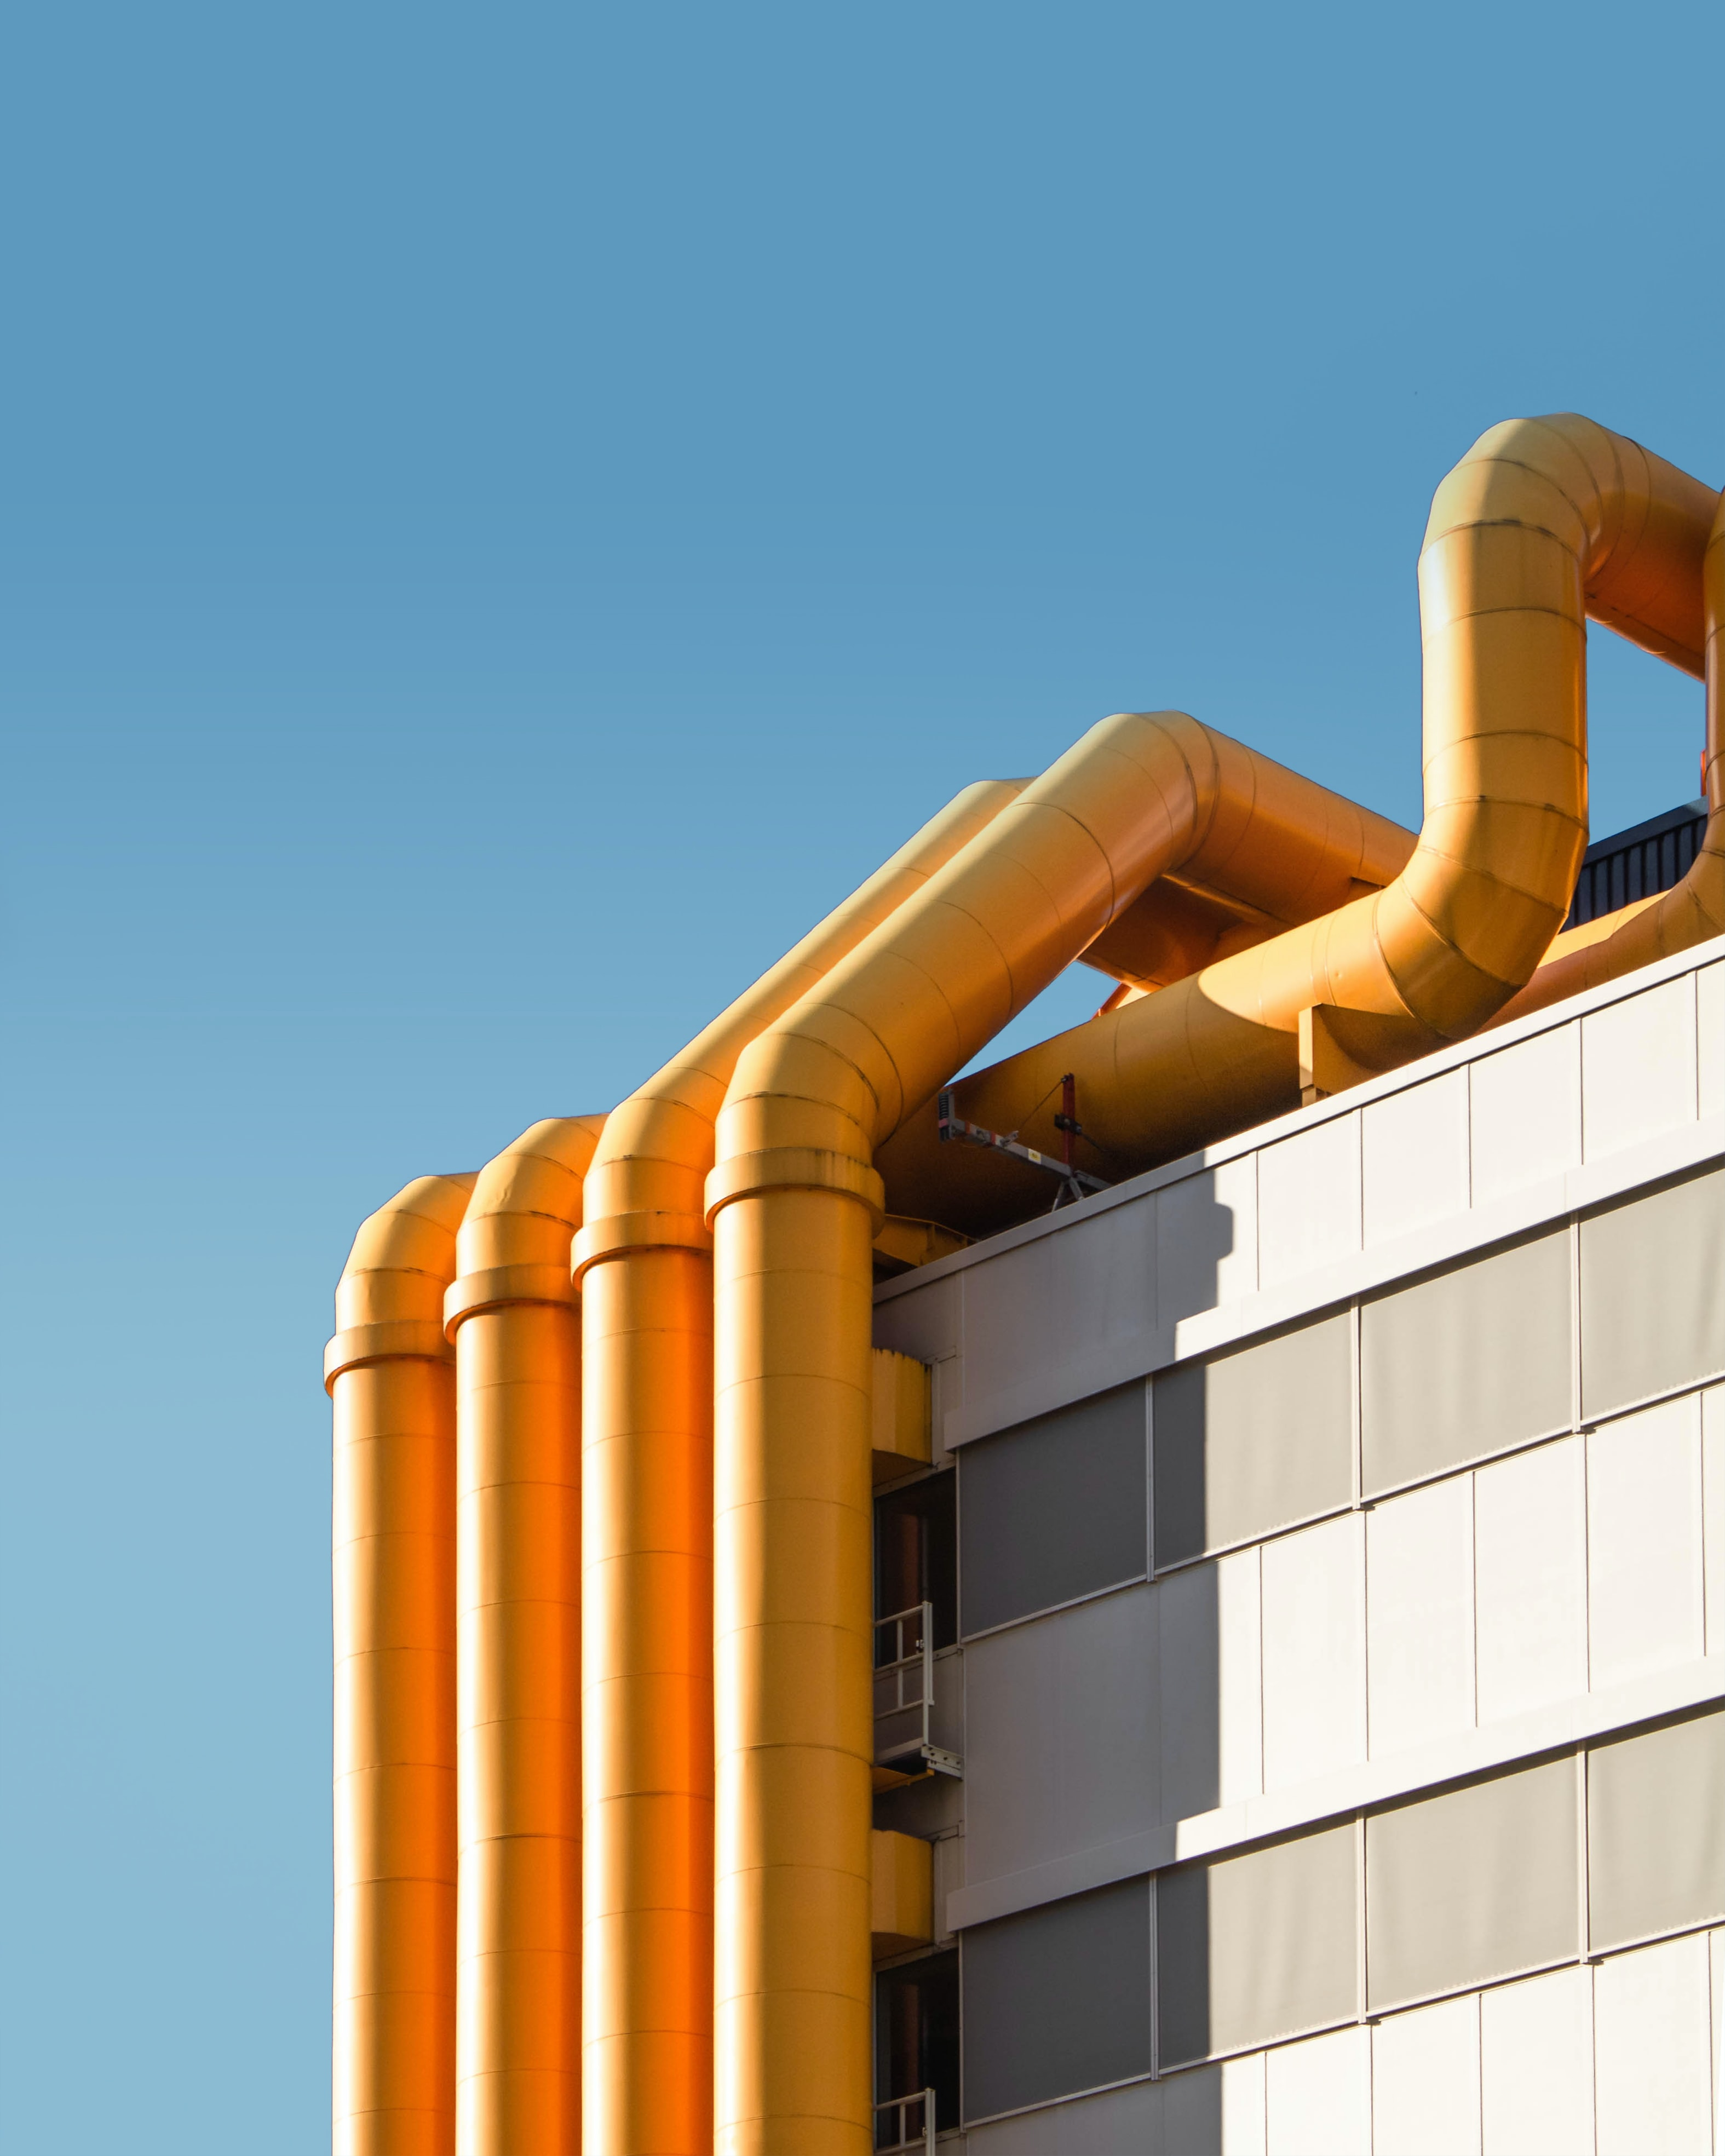 Is Your Supply Chain as Vulnerable as the Gas Pipeline?